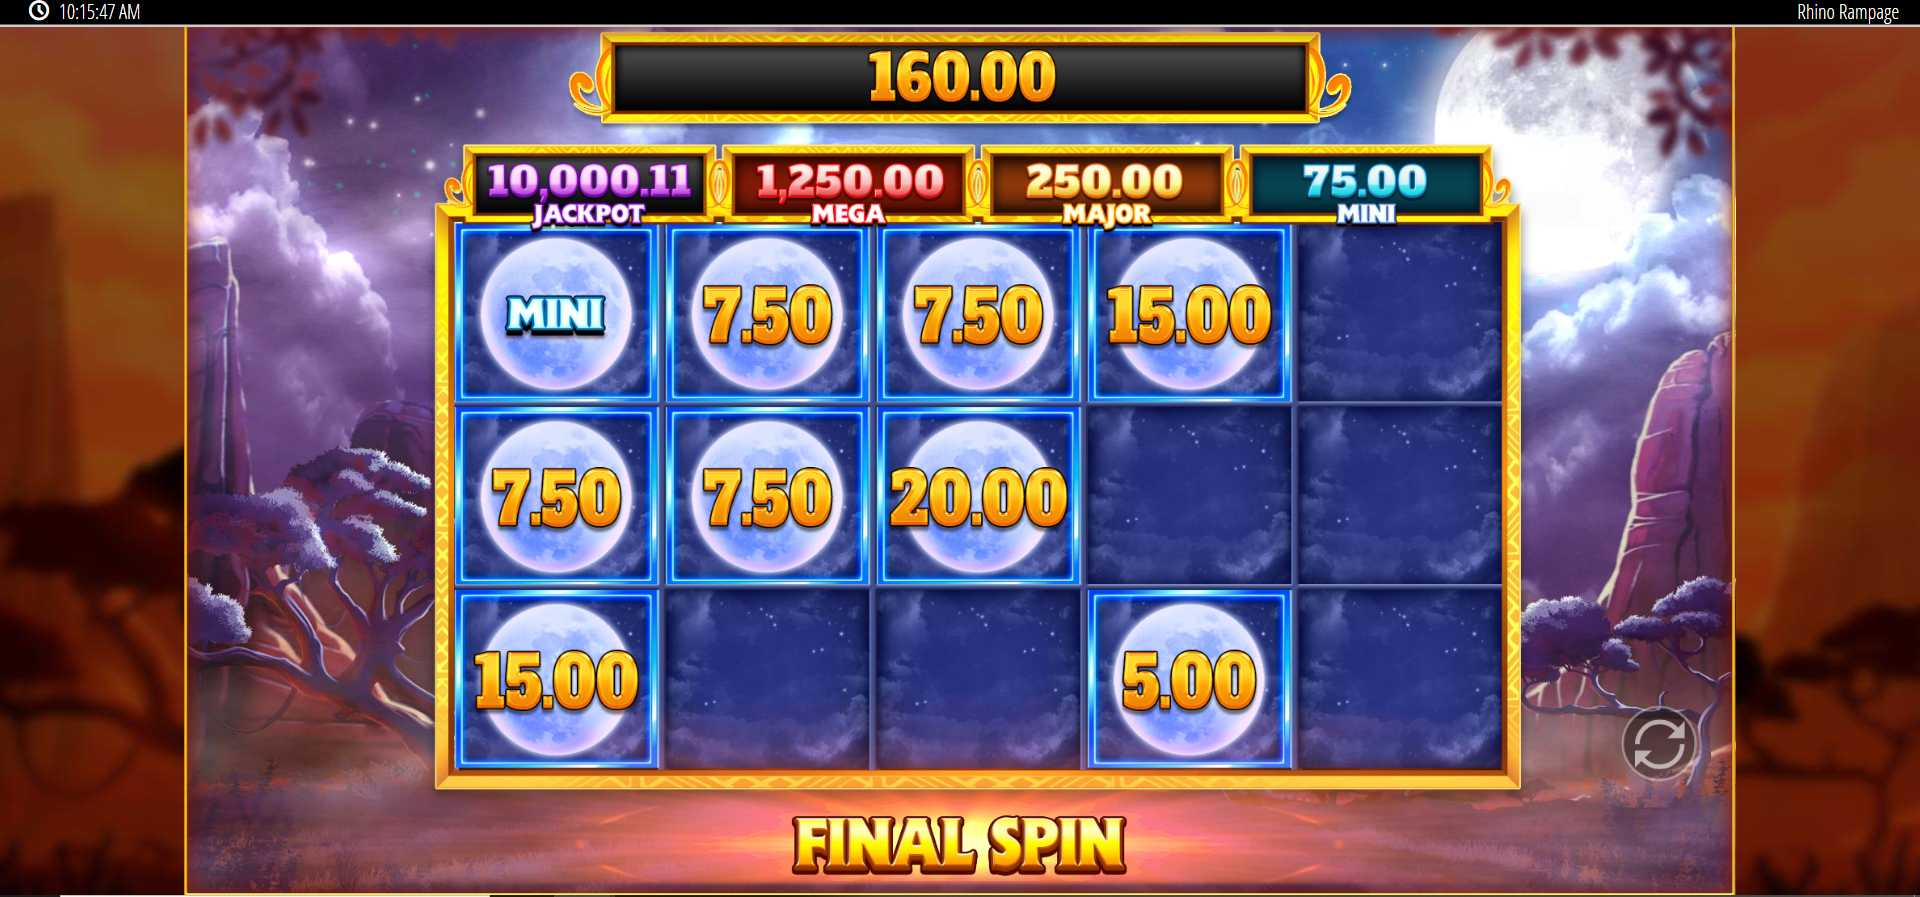 How the record jackpot has accumulated - timelottery